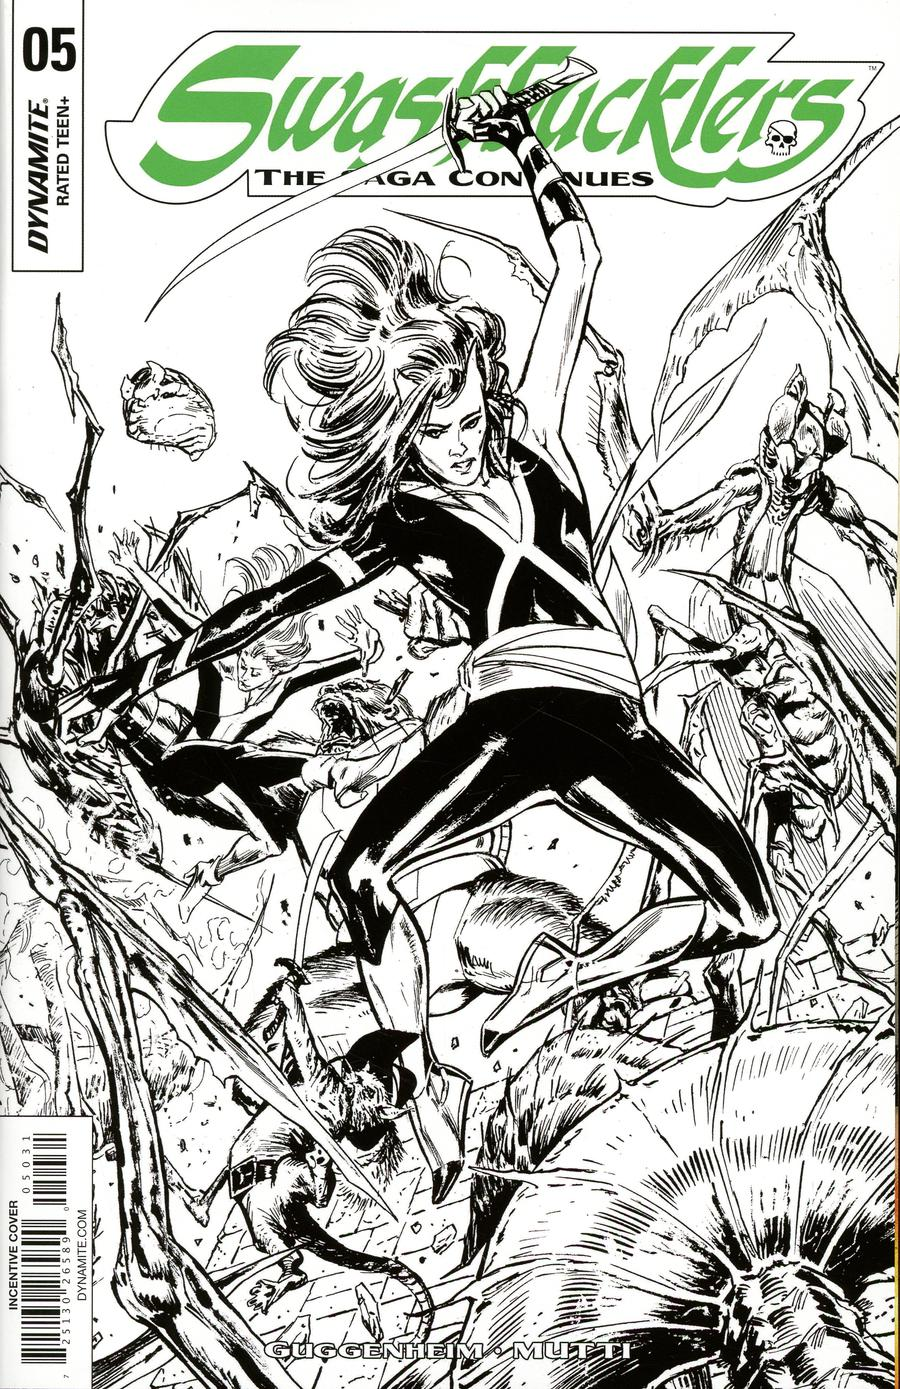 Swashbucklers Saga Continues #5 Cover C Incentive Butch Guice Black & White Cover